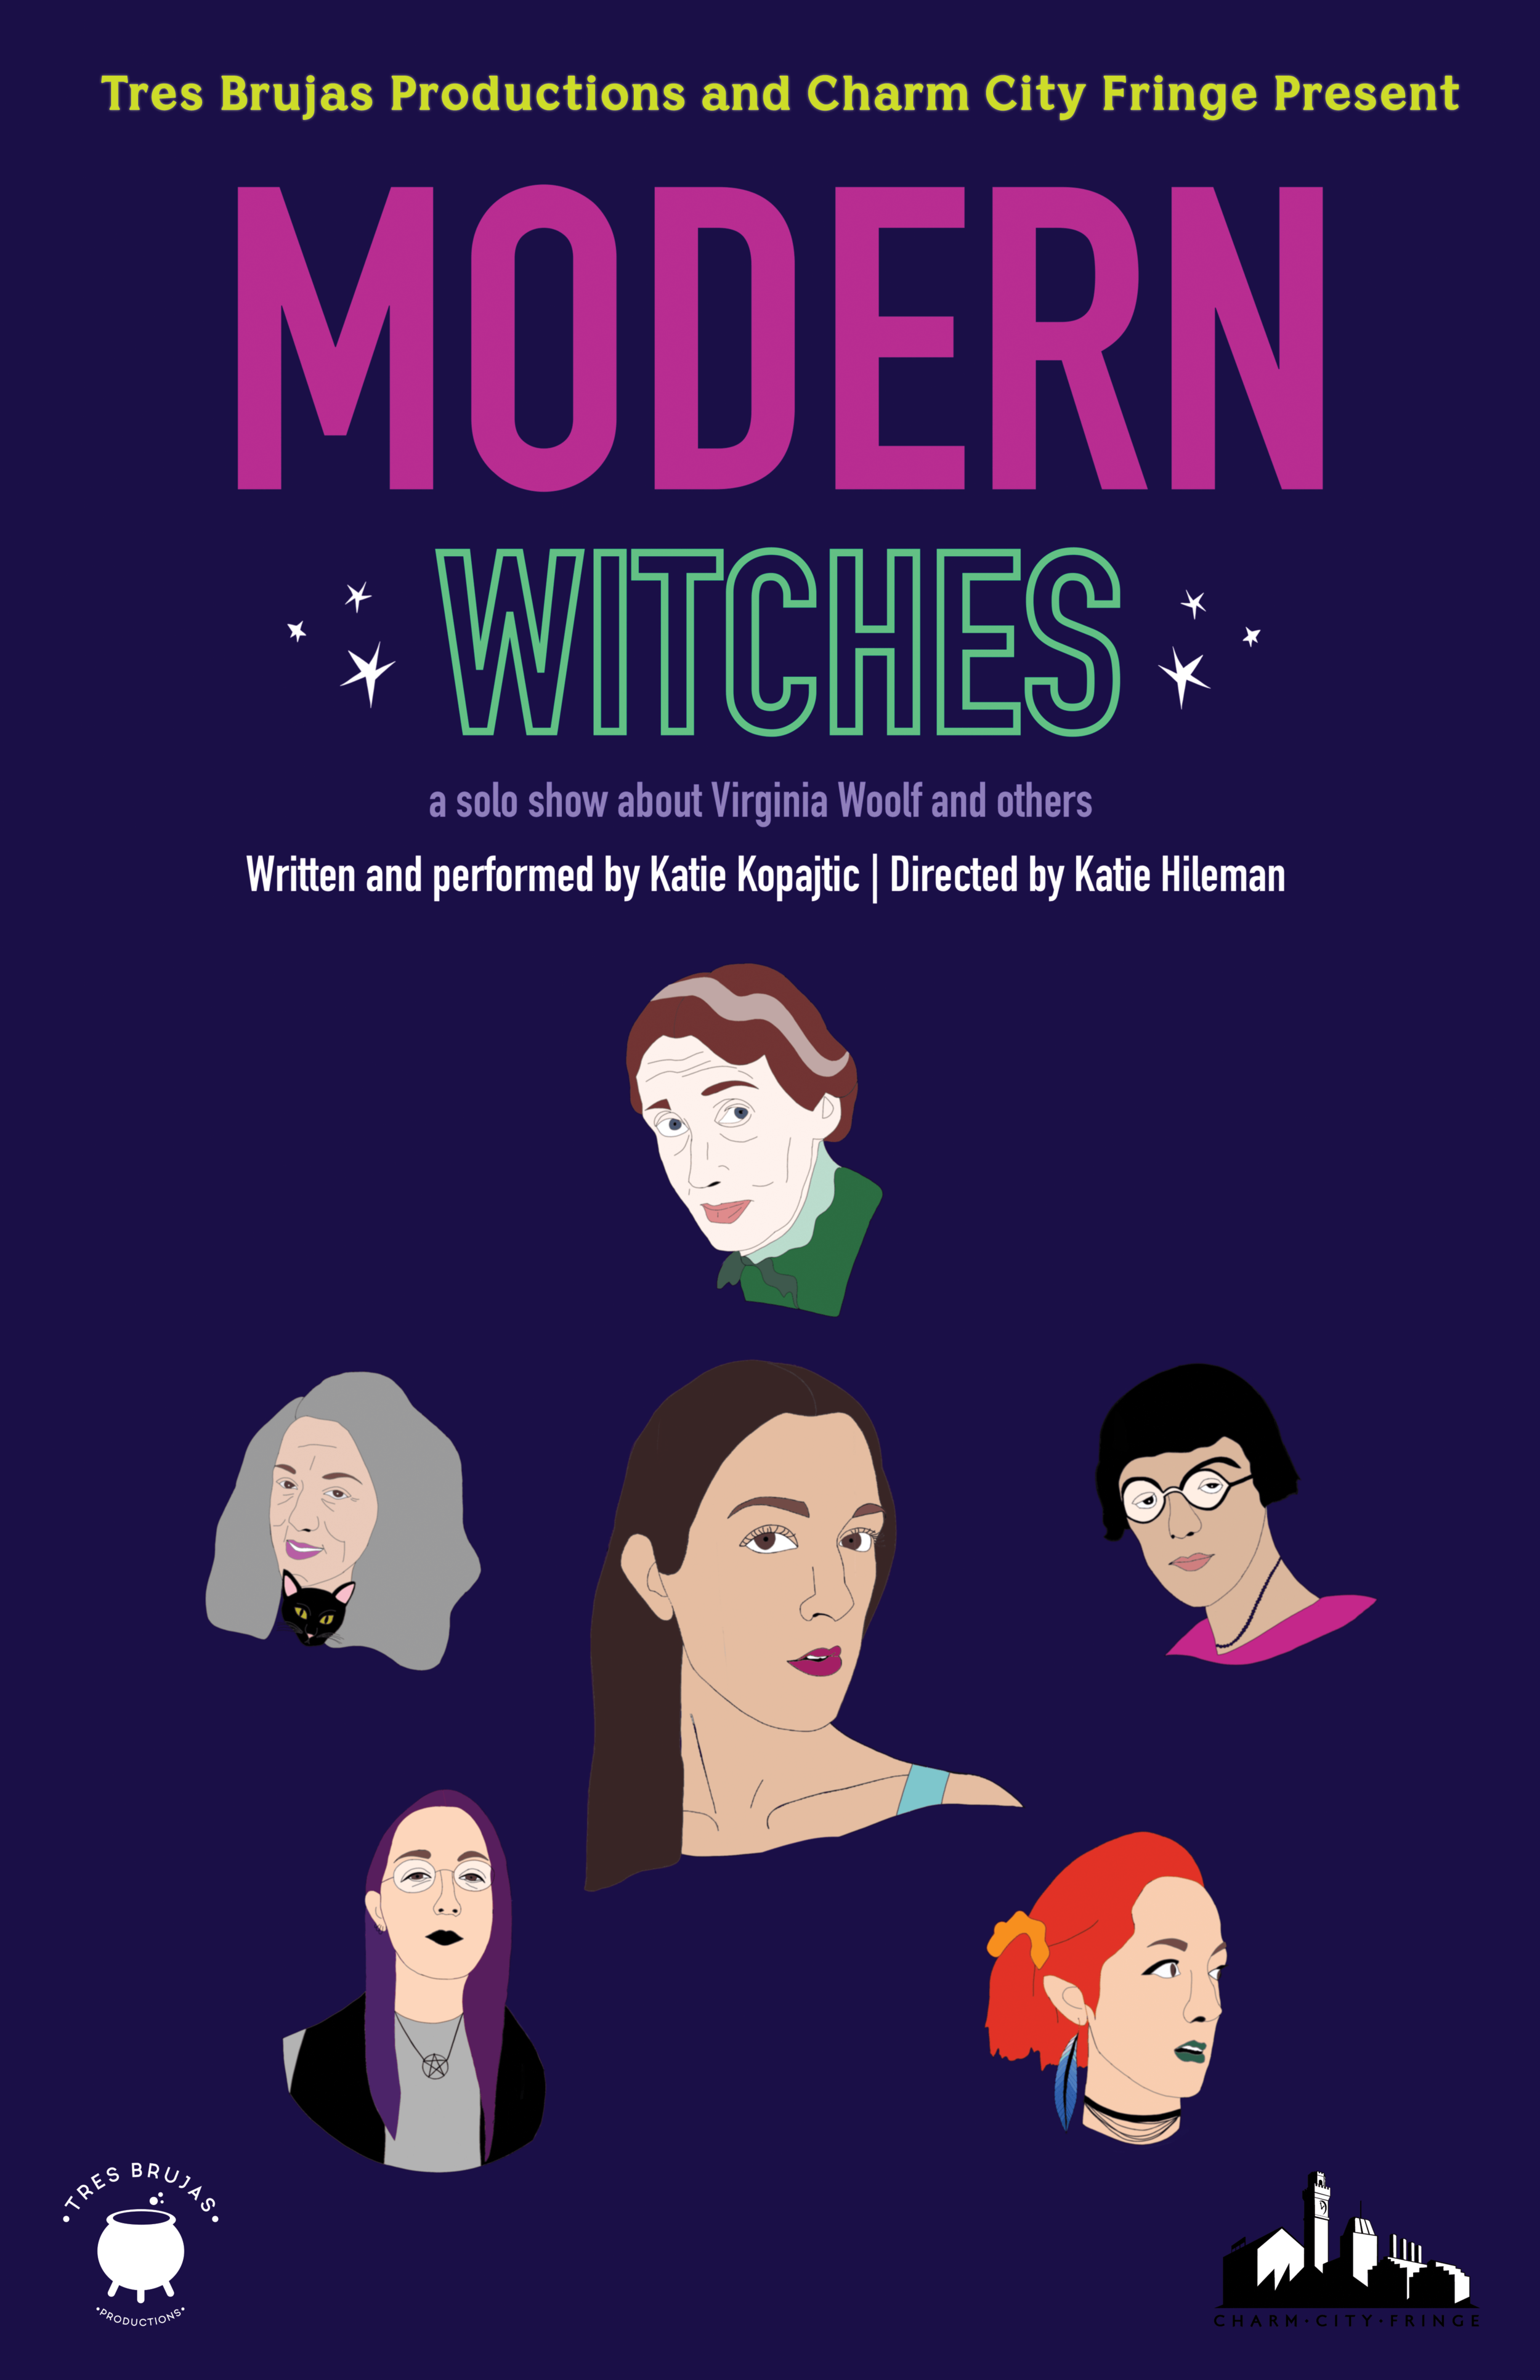 MODERN WITCHESwritten and performed by Katie Kopajtic - MODERN WITCHES is a multi-character solo show inspired by the life of Virginia Woolf that examines the characteristics of women beneath the label of